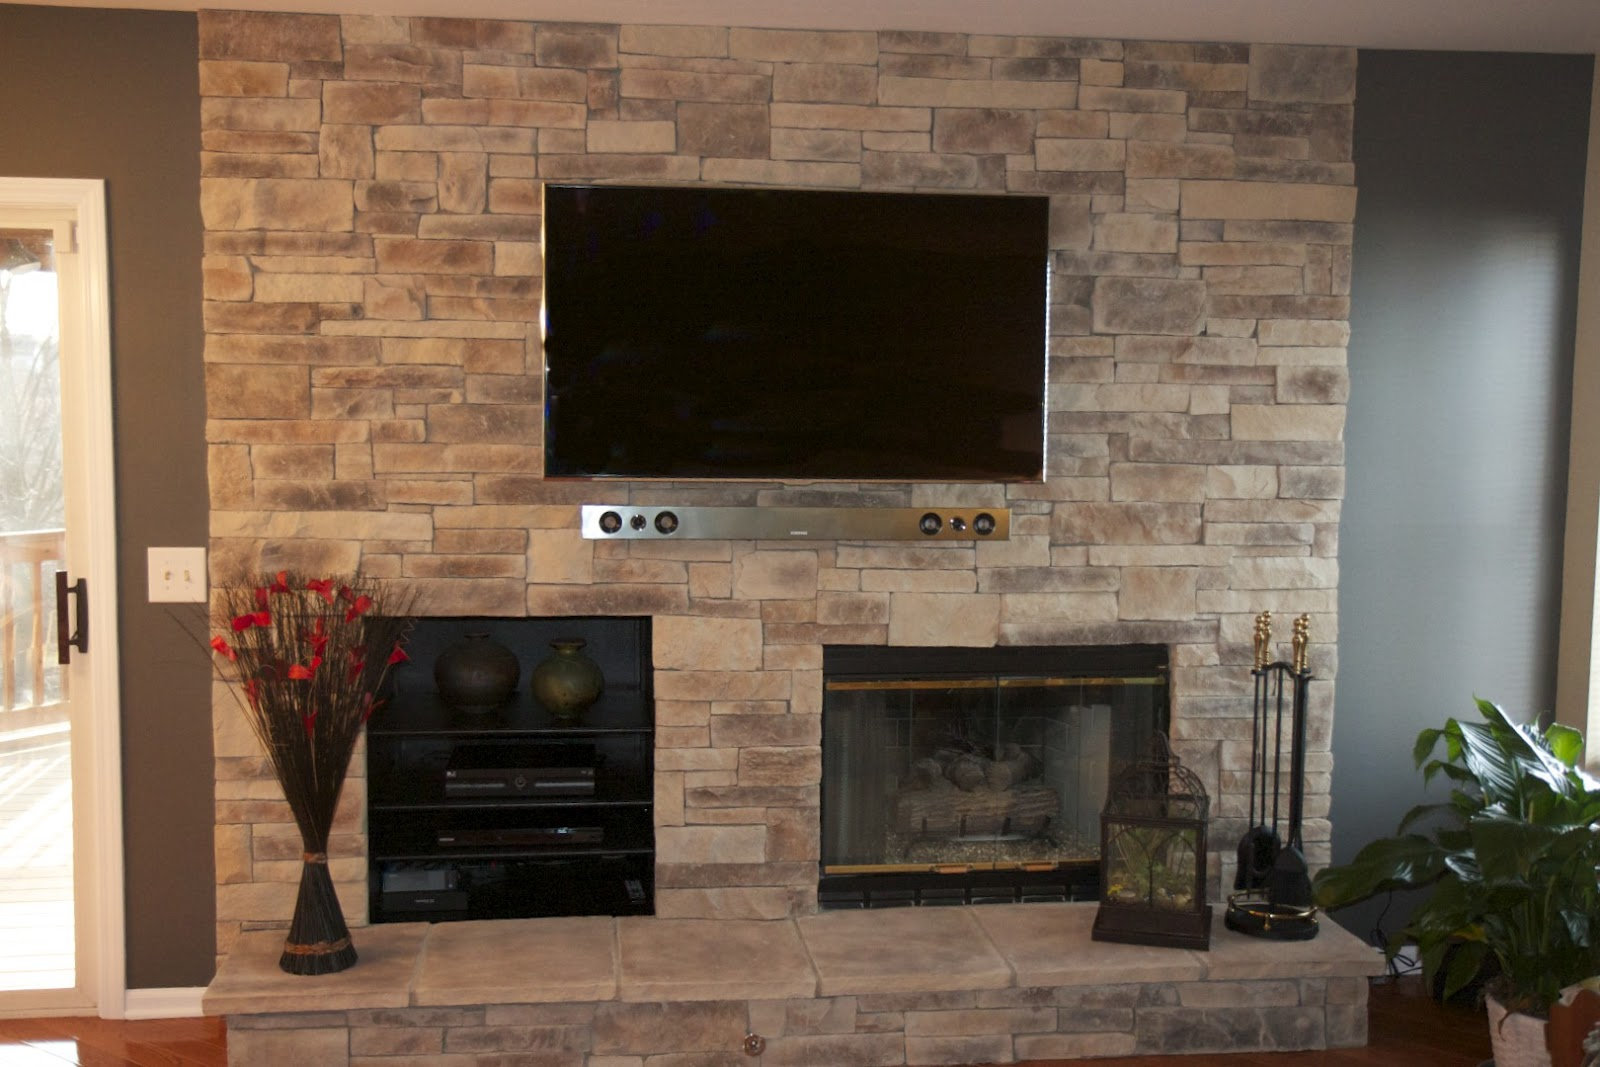 North star stone stone fireplaces stone exteriors for Interior rock walls designs